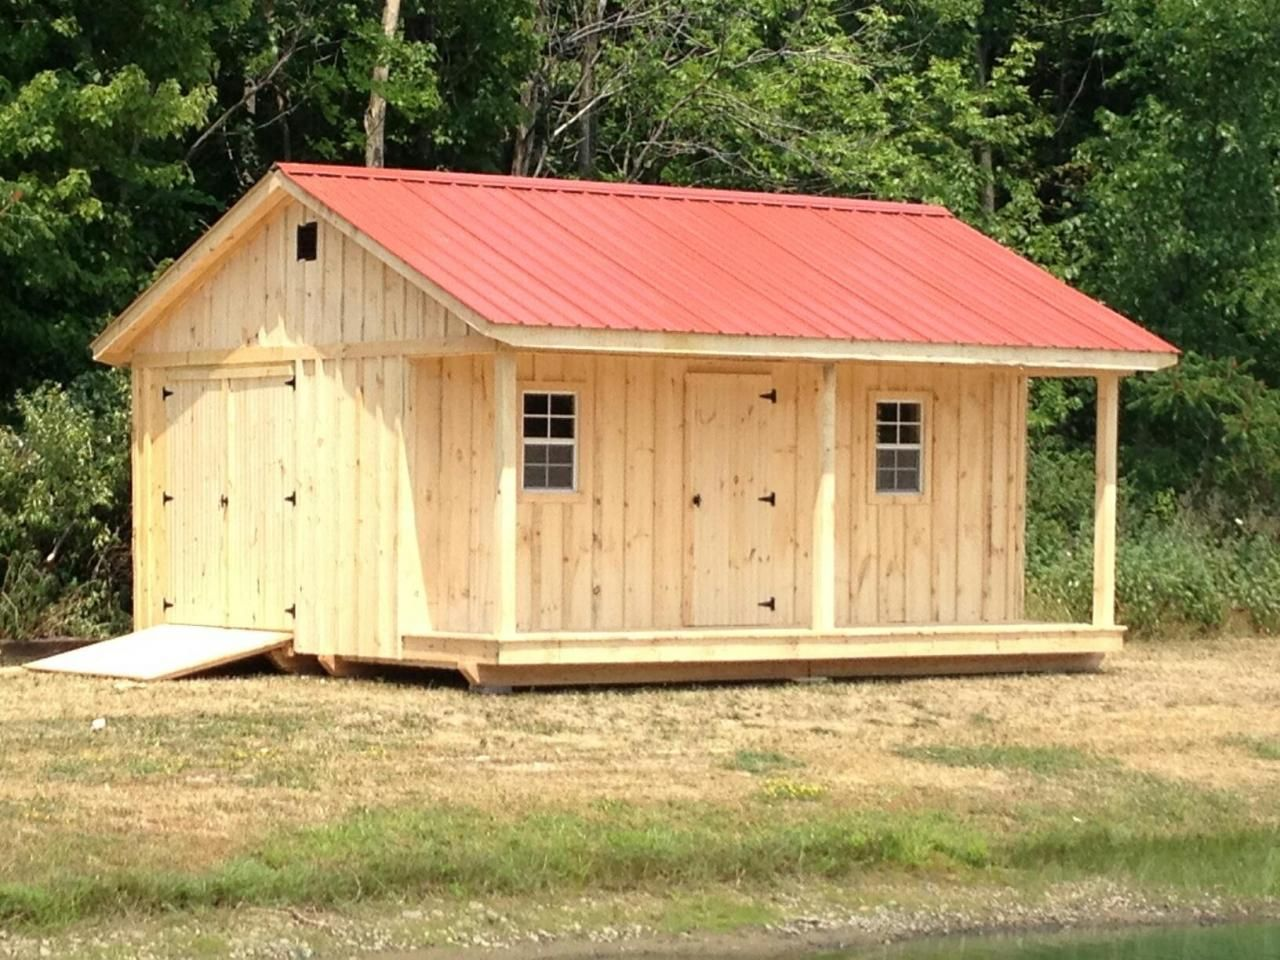 10 39 X 18 39 Shed With 4 39 Porch Metal Roof Windows And